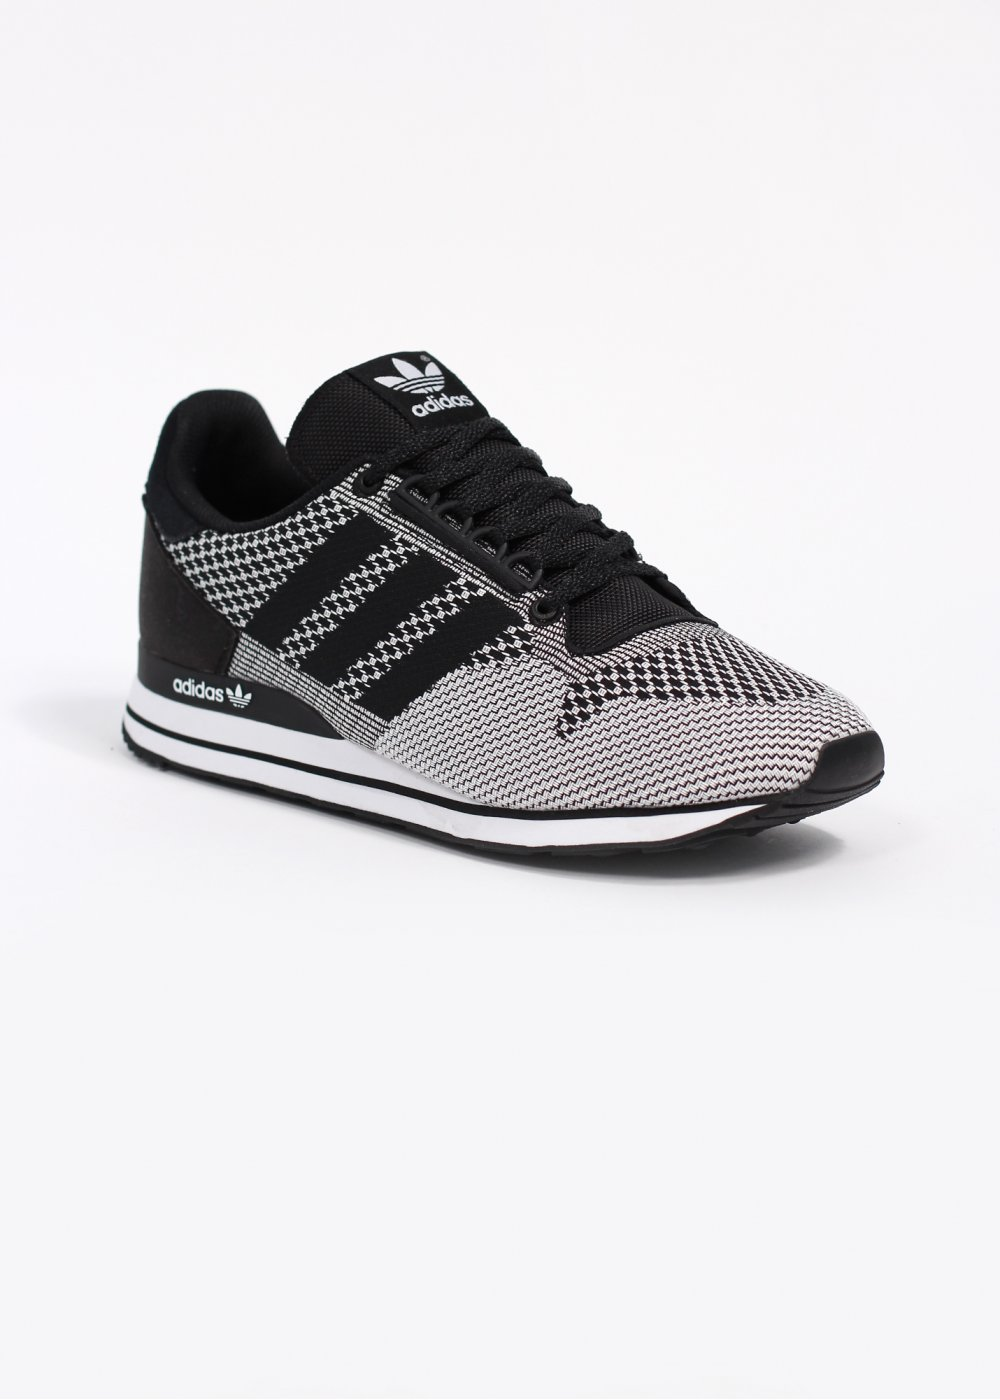 Adidas Originals Originals Top Ten Low Sneaker In Black: Adidas Originals ZX 500 OG Weave Trainers